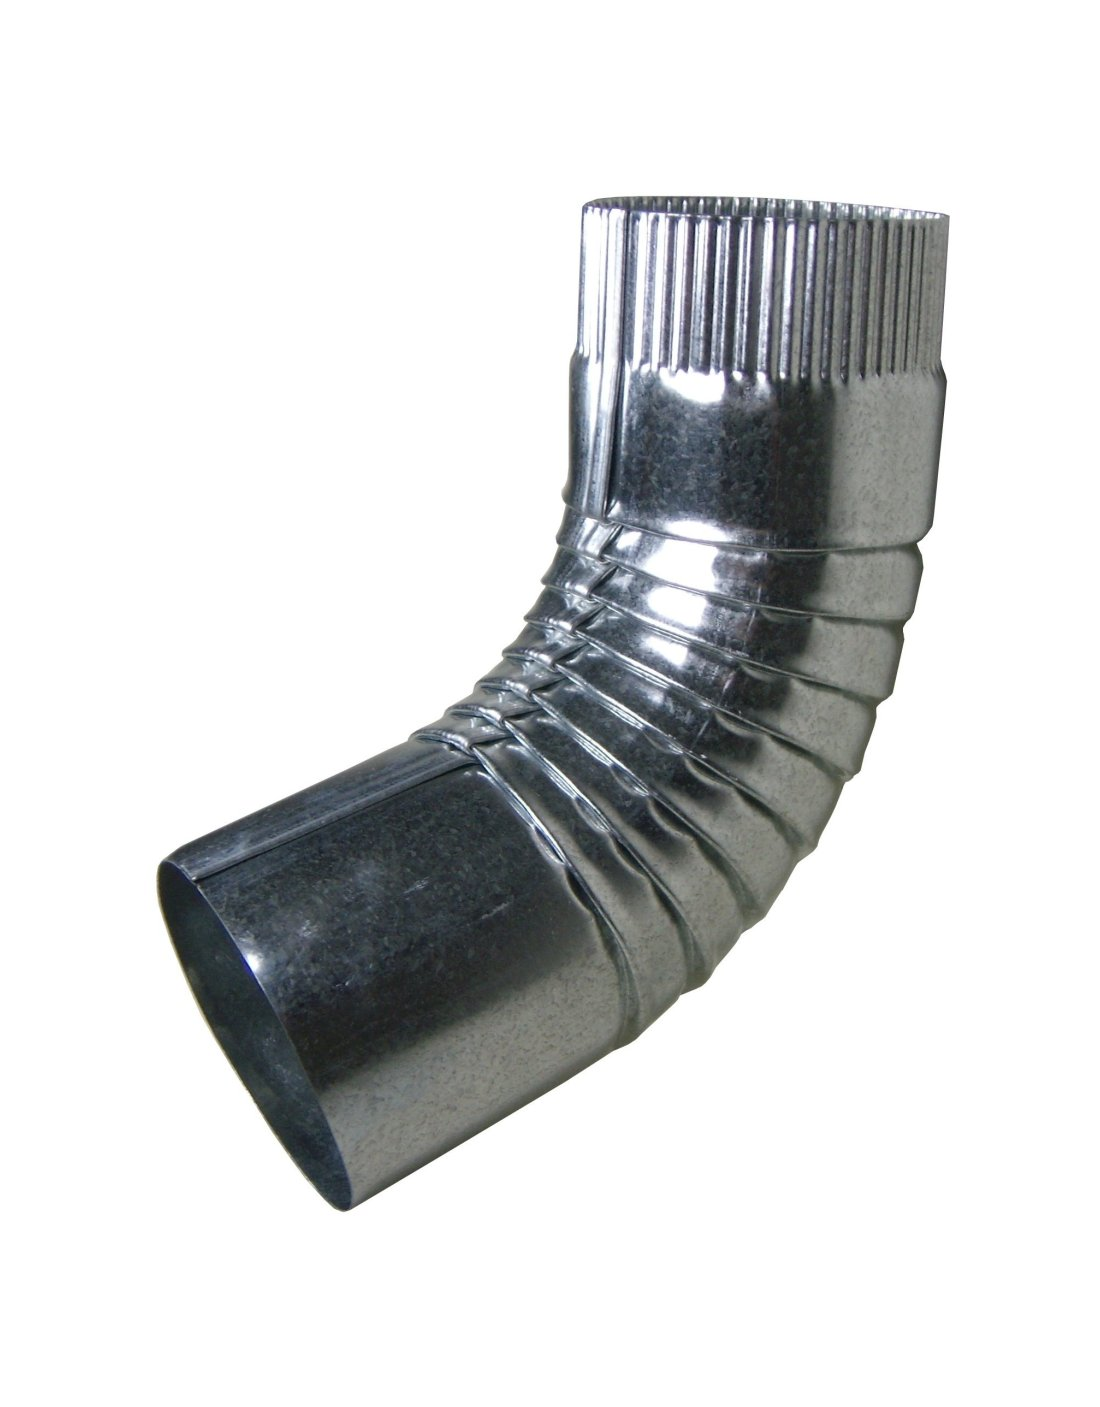 Galvanized Elbows Are Fittings That Attach To The